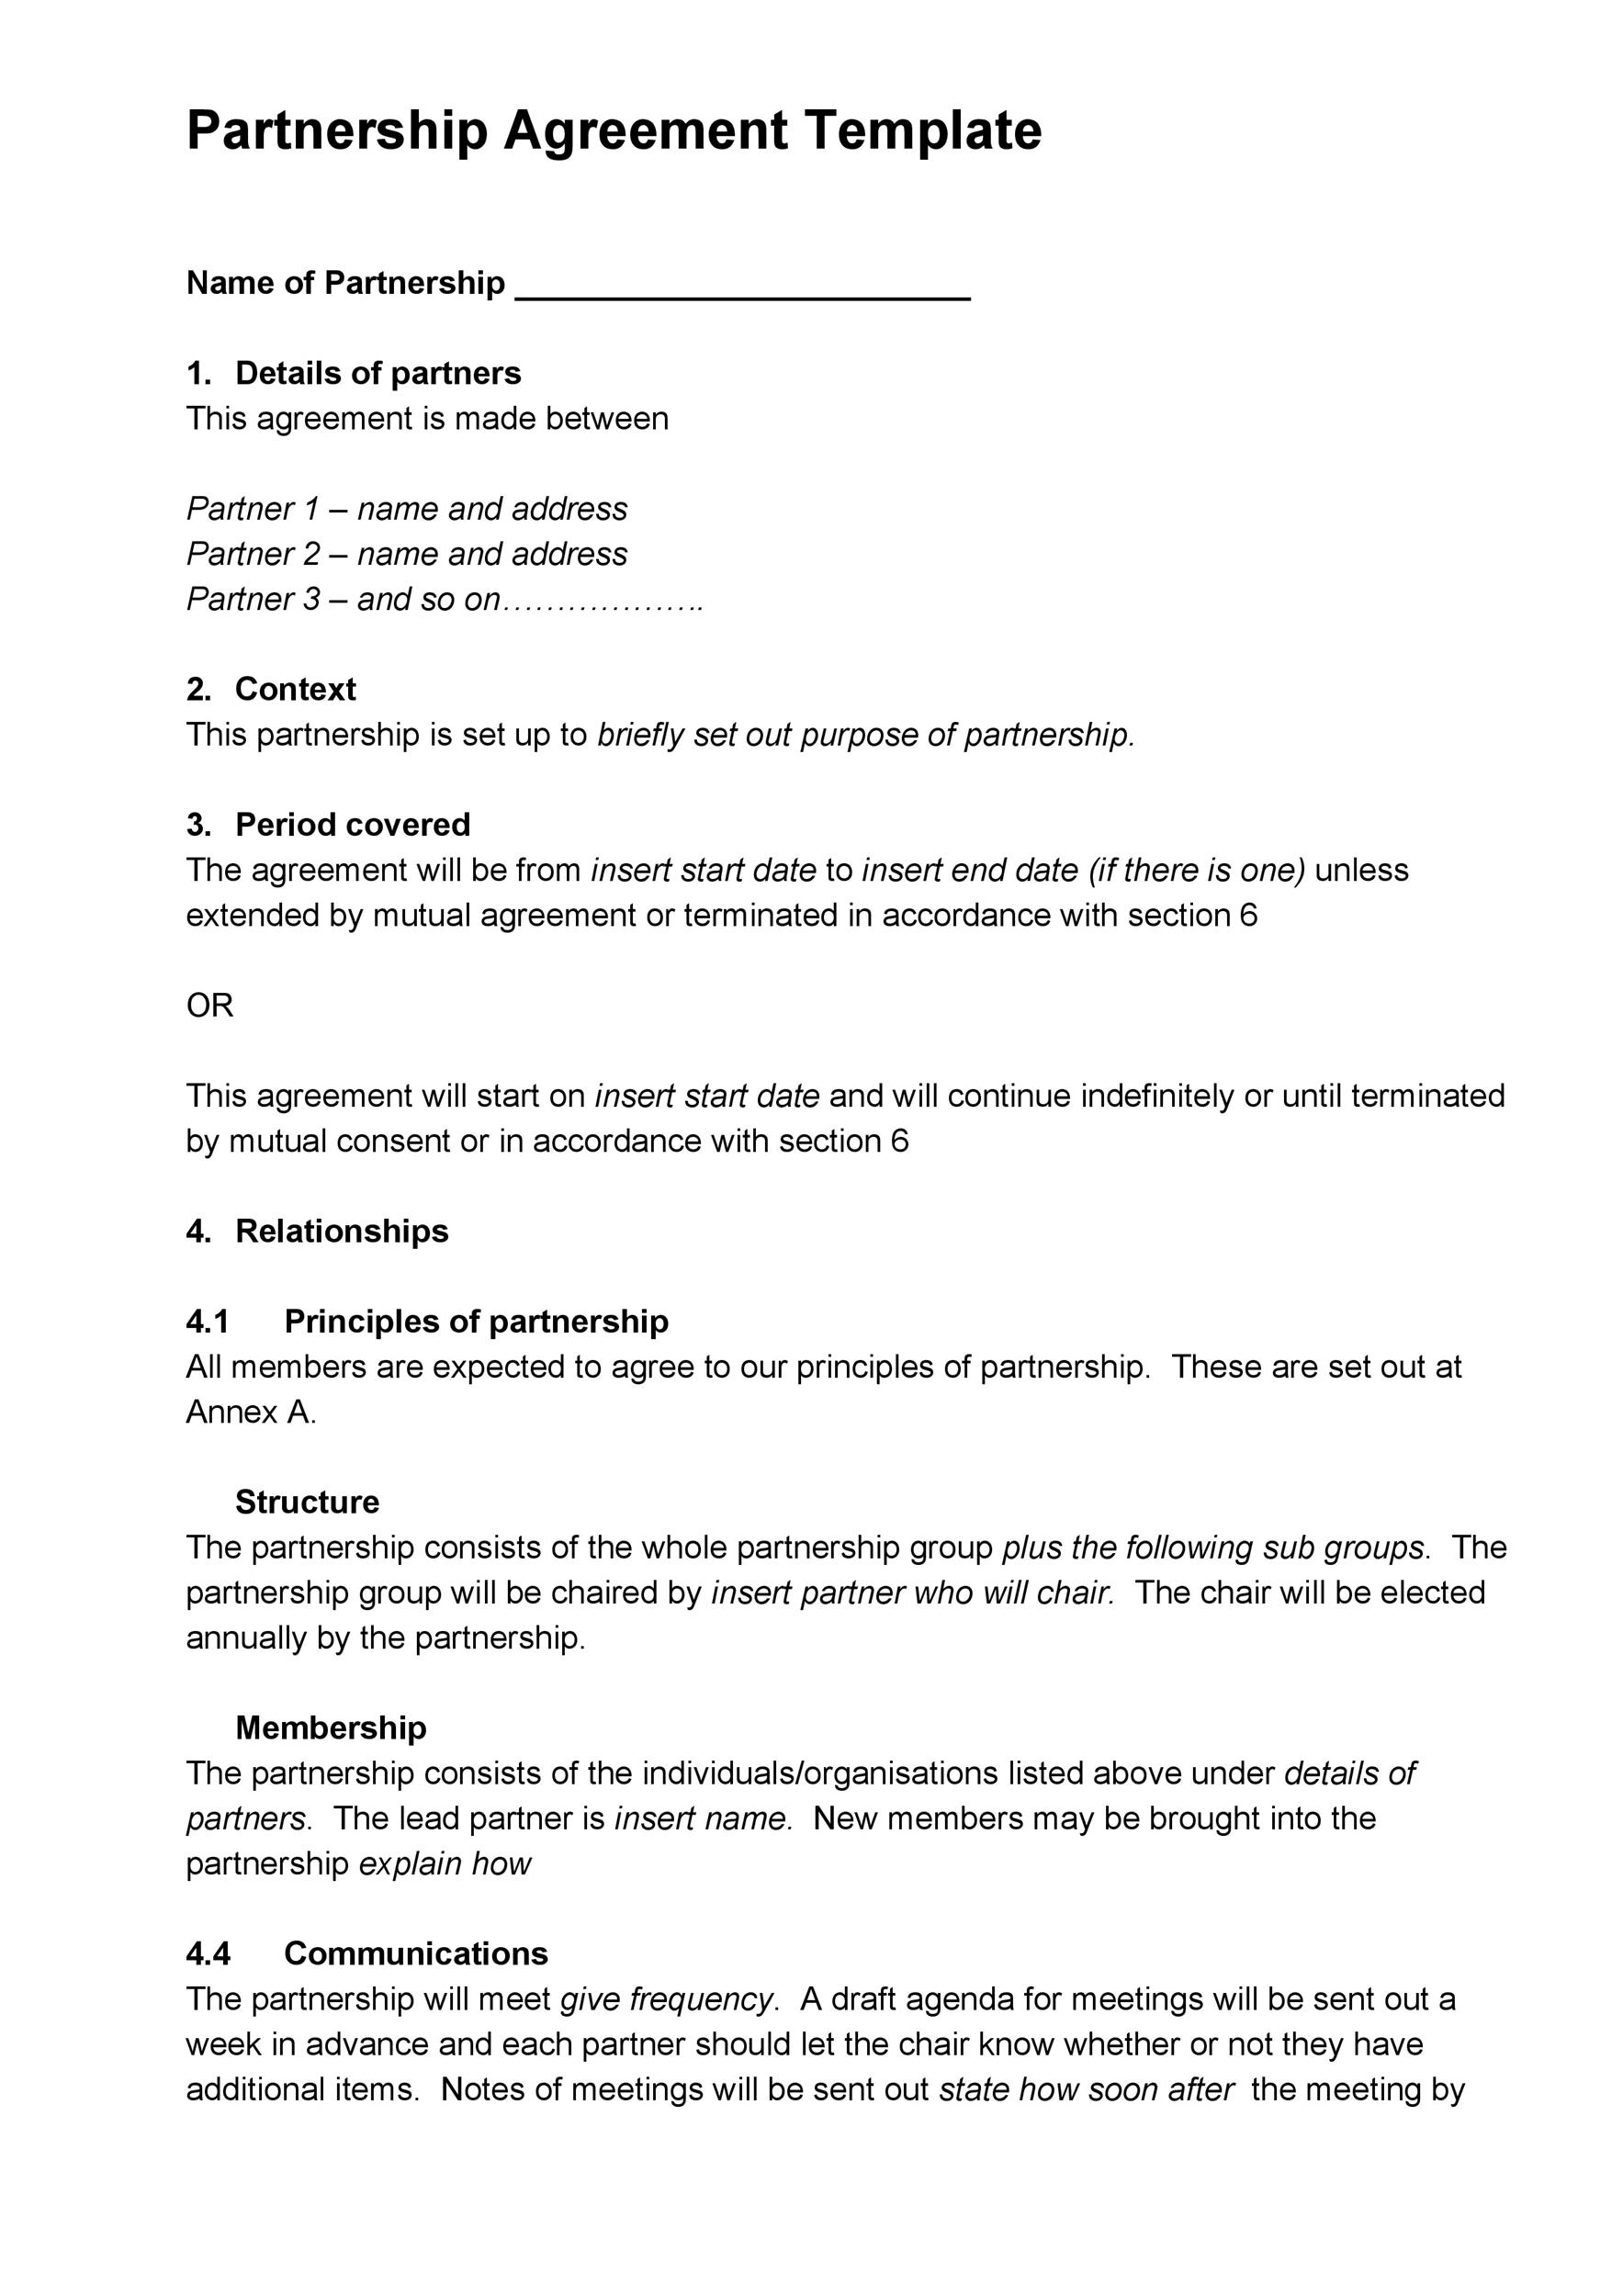 Free Partnership Agreement Template 40